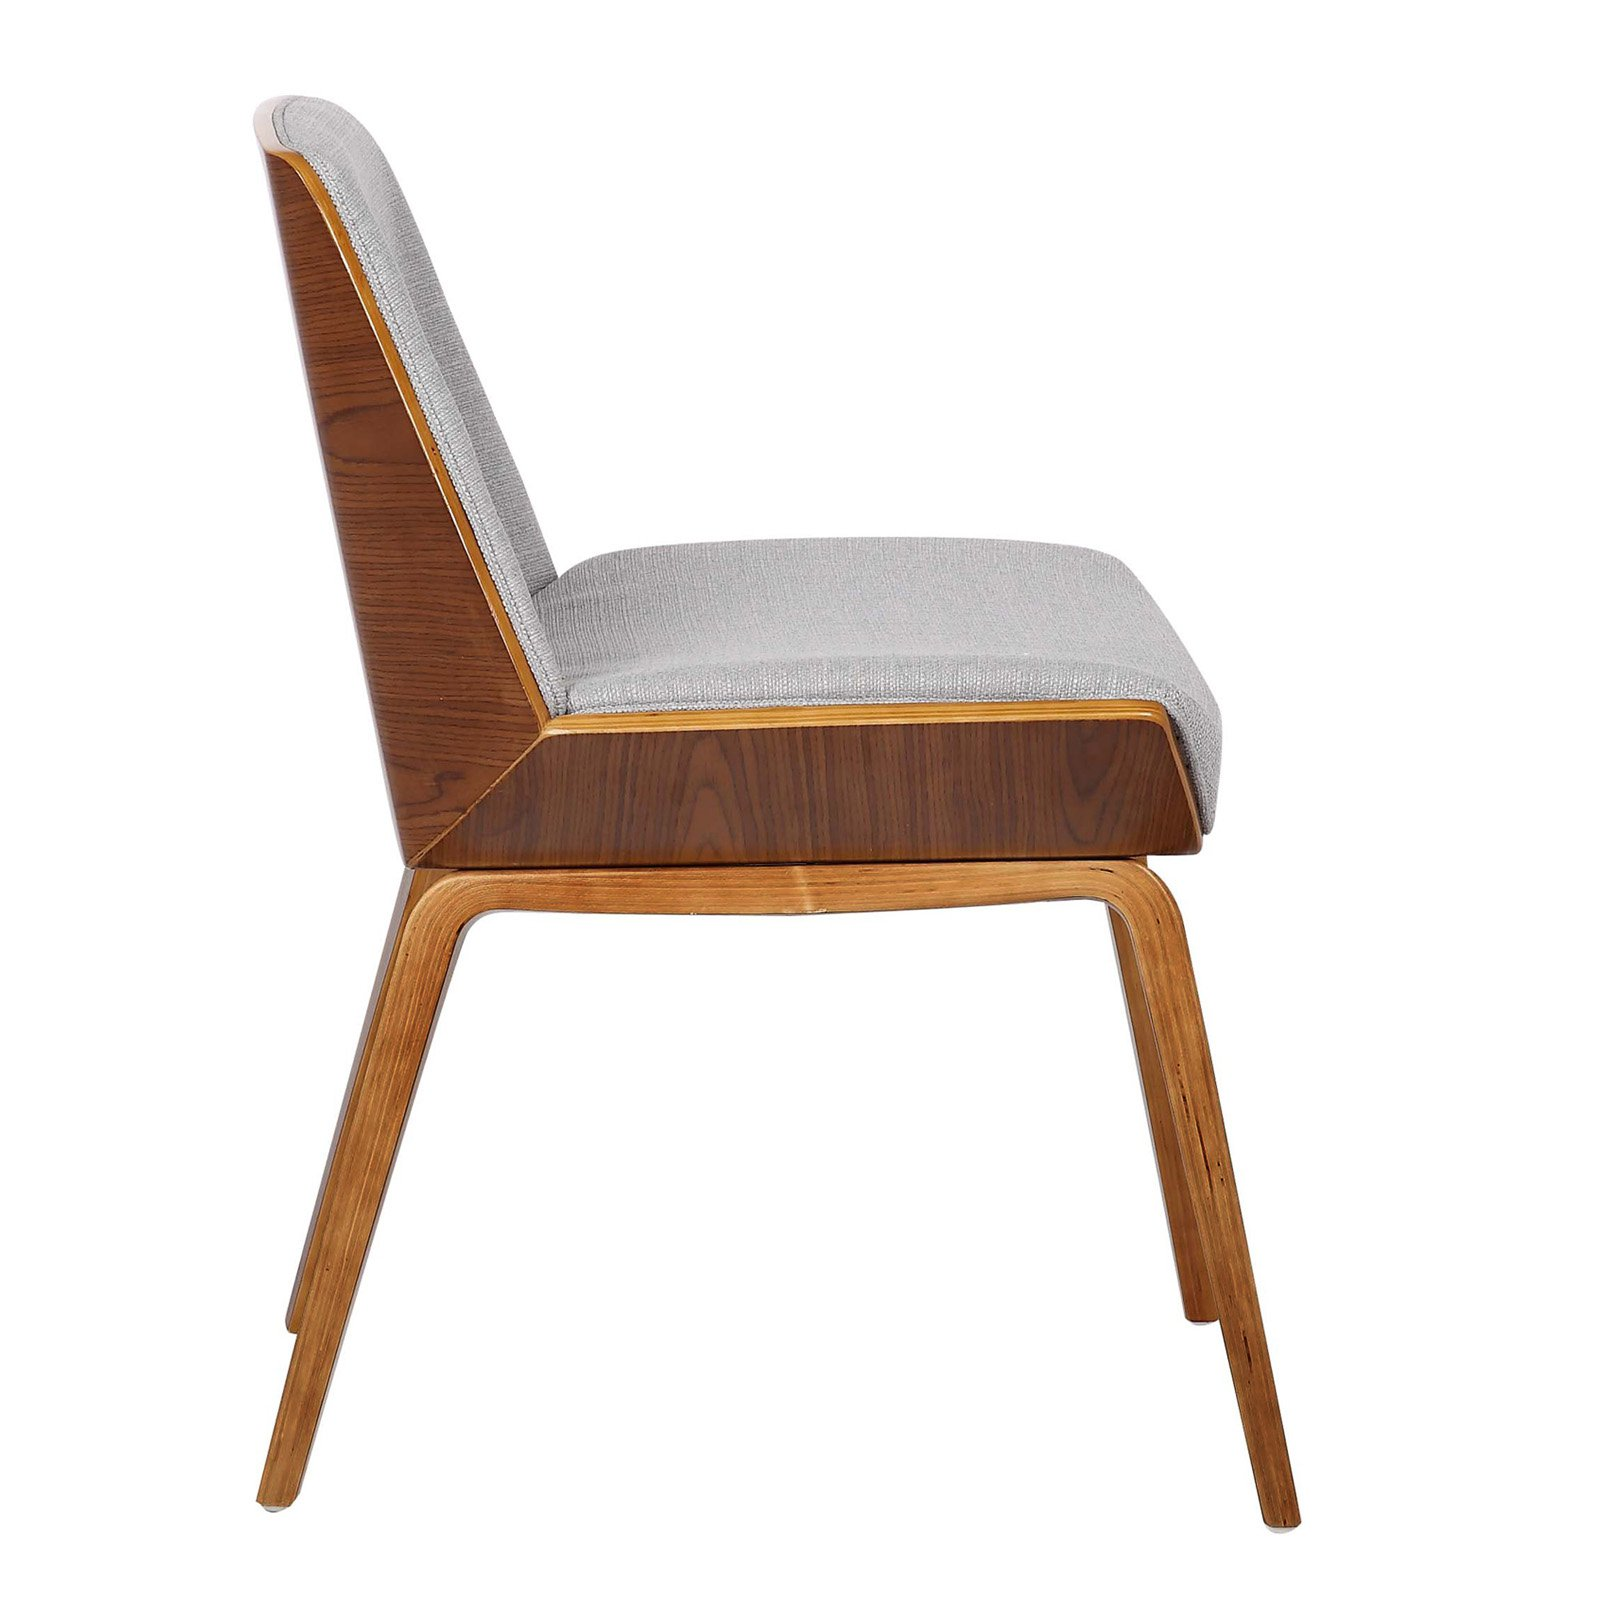 2561baa690cc9 Armen Living Agi Mid-Century Dining Chair in Walnut Wood and Fabric -  Walmart.com